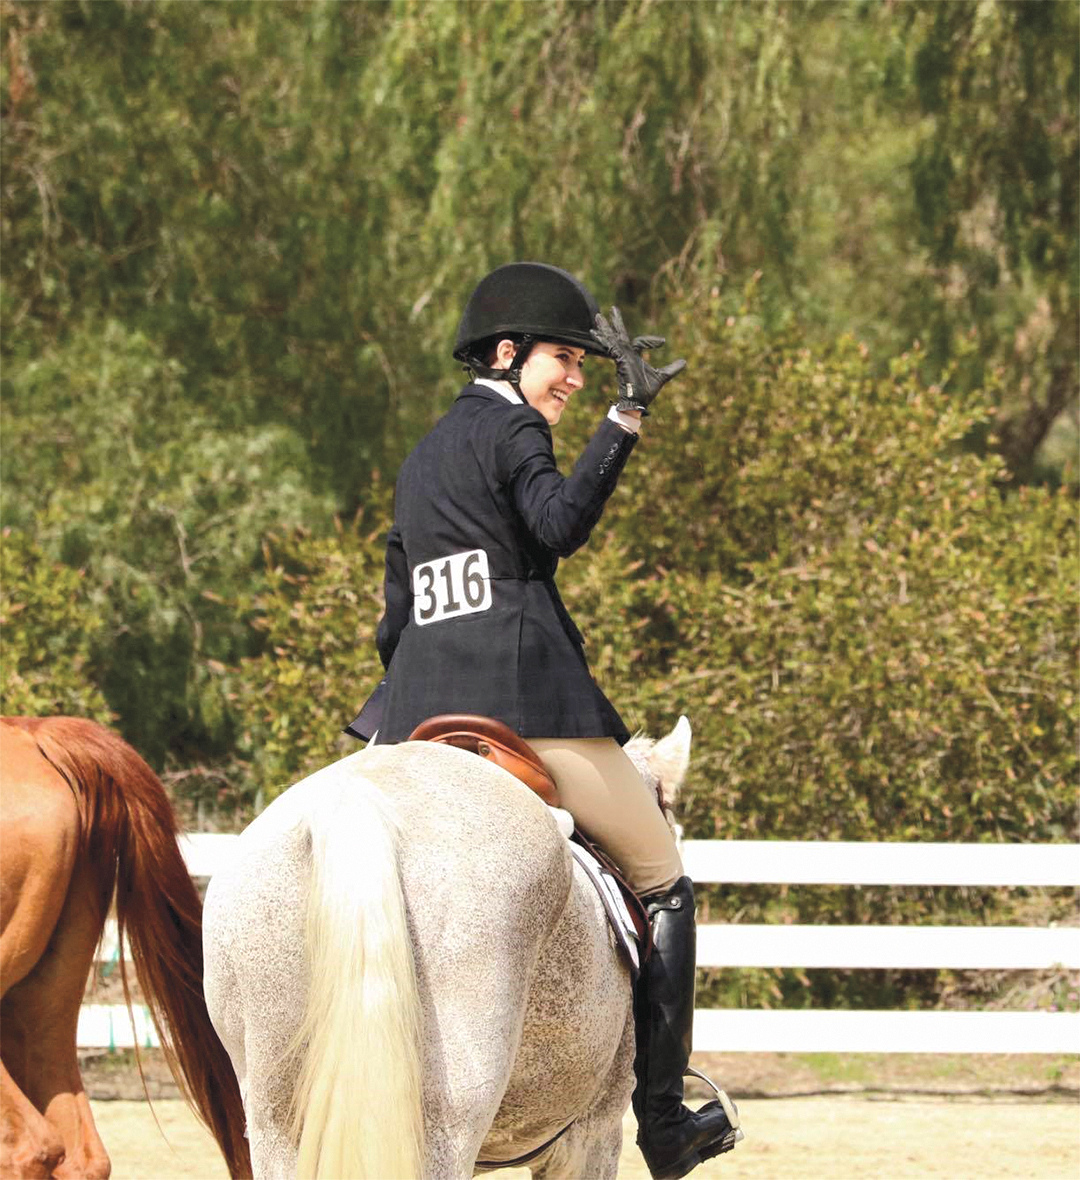 Arizona Parker throwing up the Wildcat sign after placing first at Regionals representing the University of Arizona Equestrian Team.